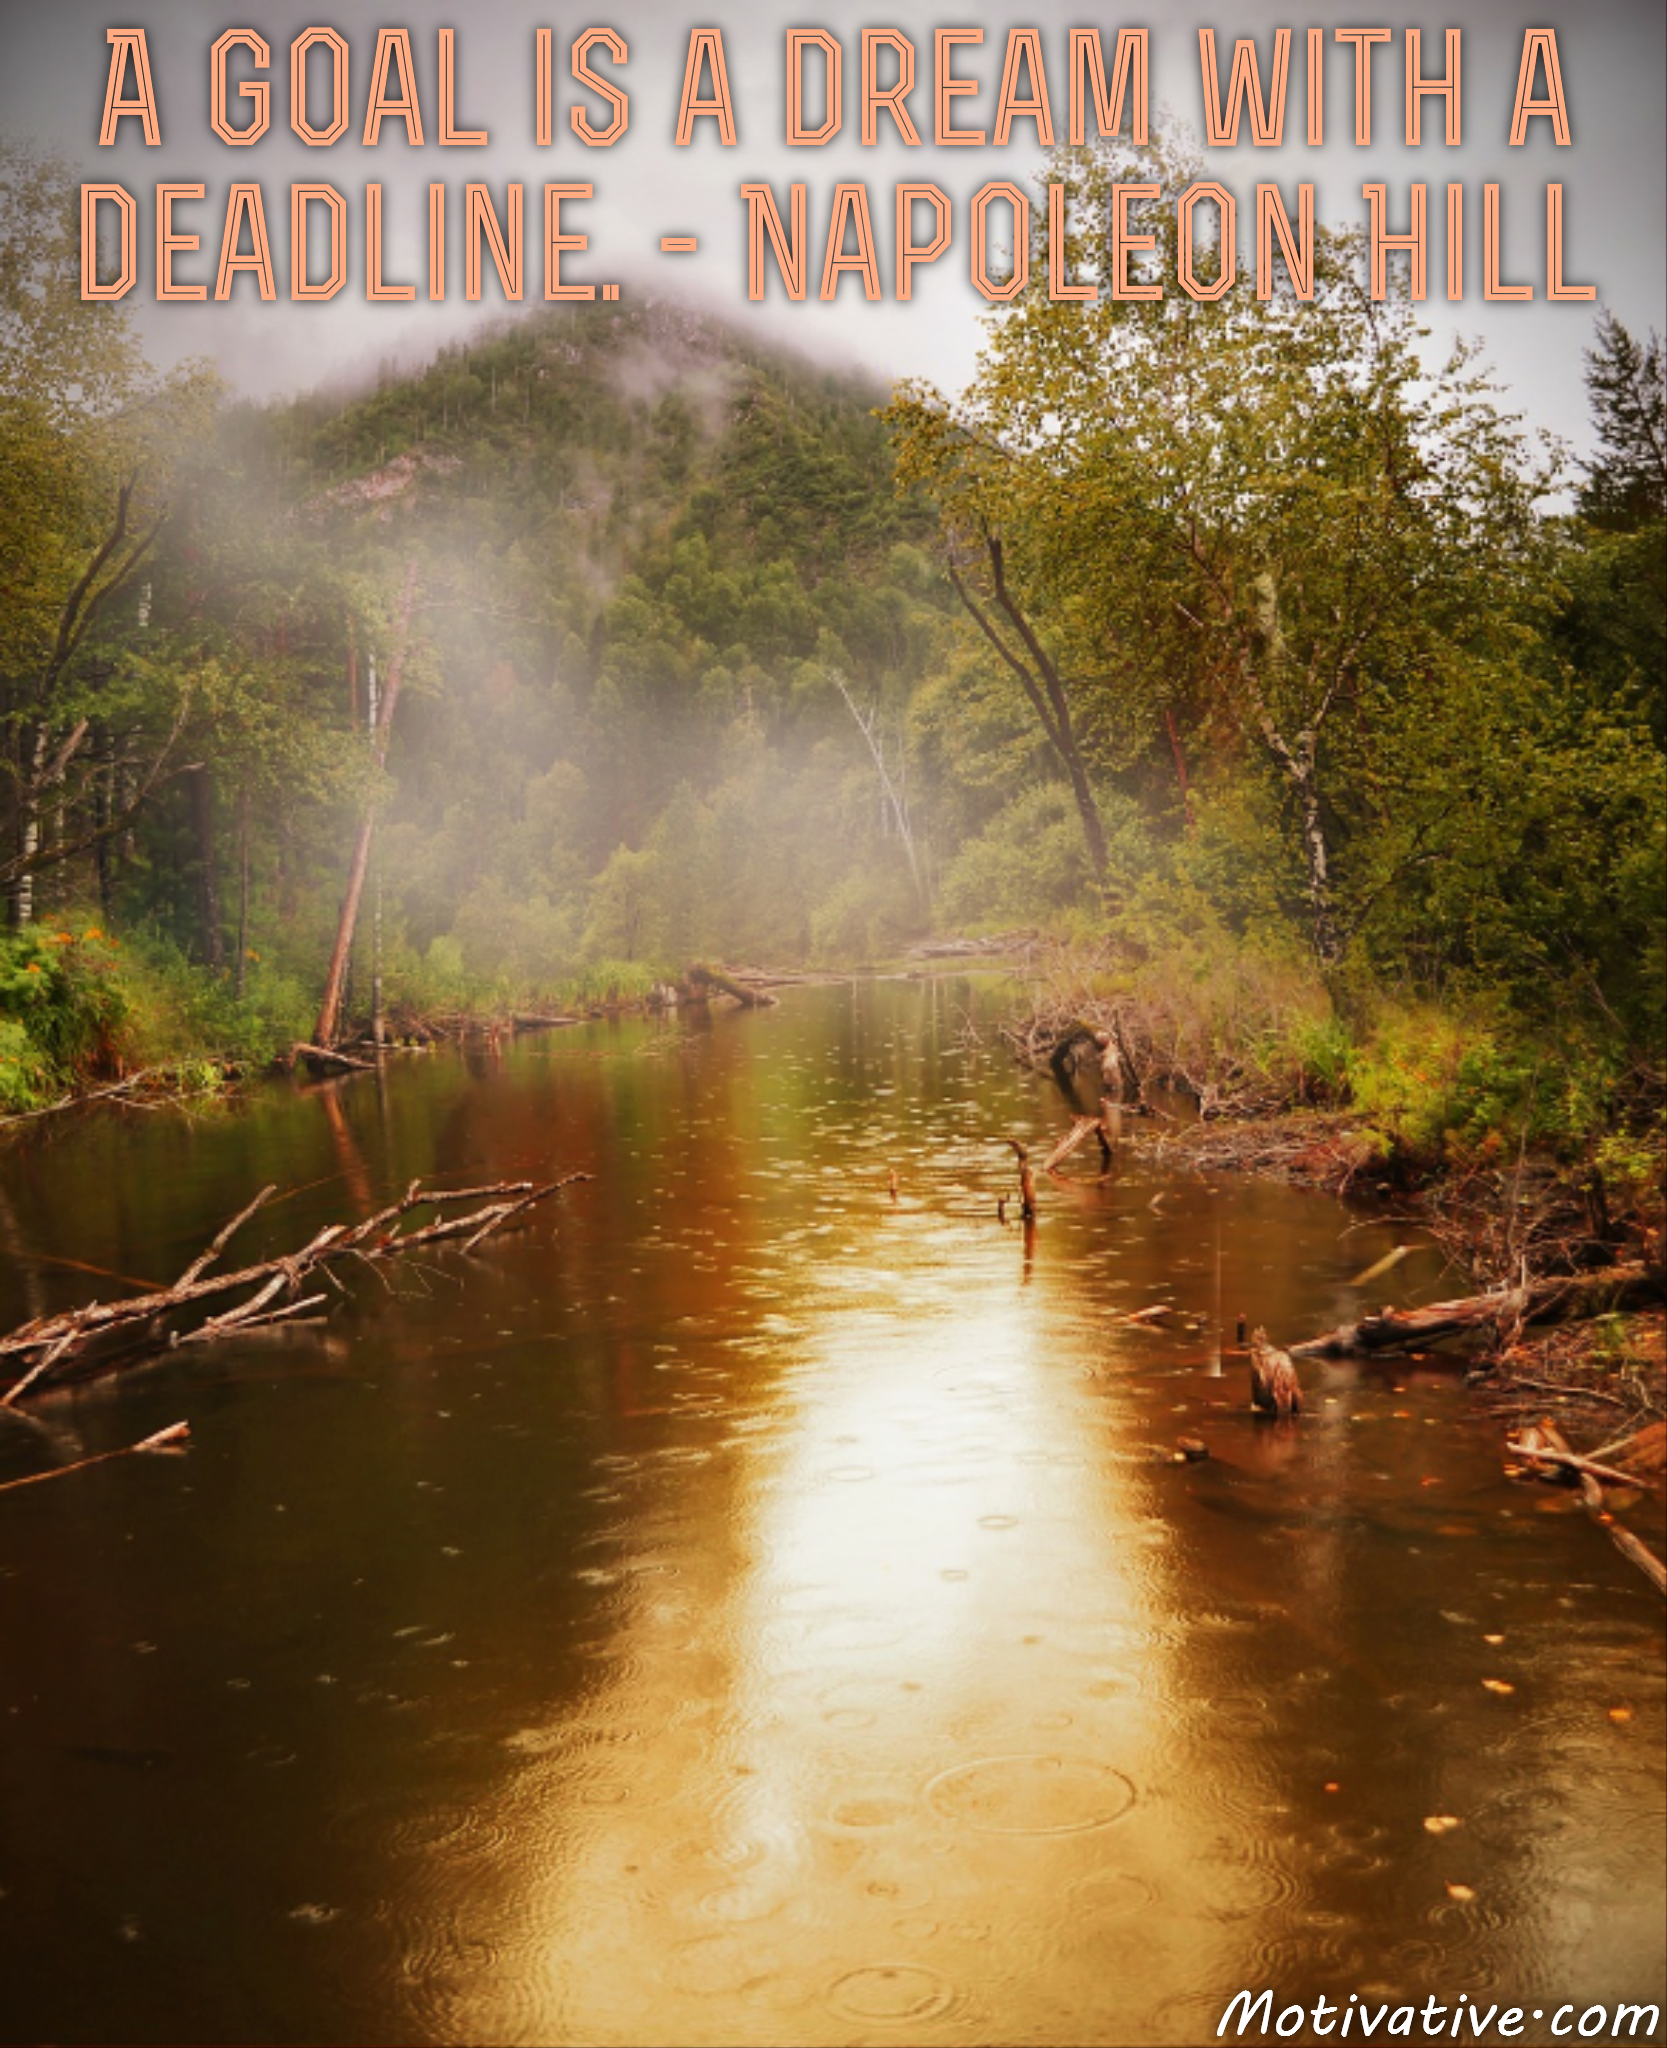 A goal is a dream with a deadline. – Napoleon Hill